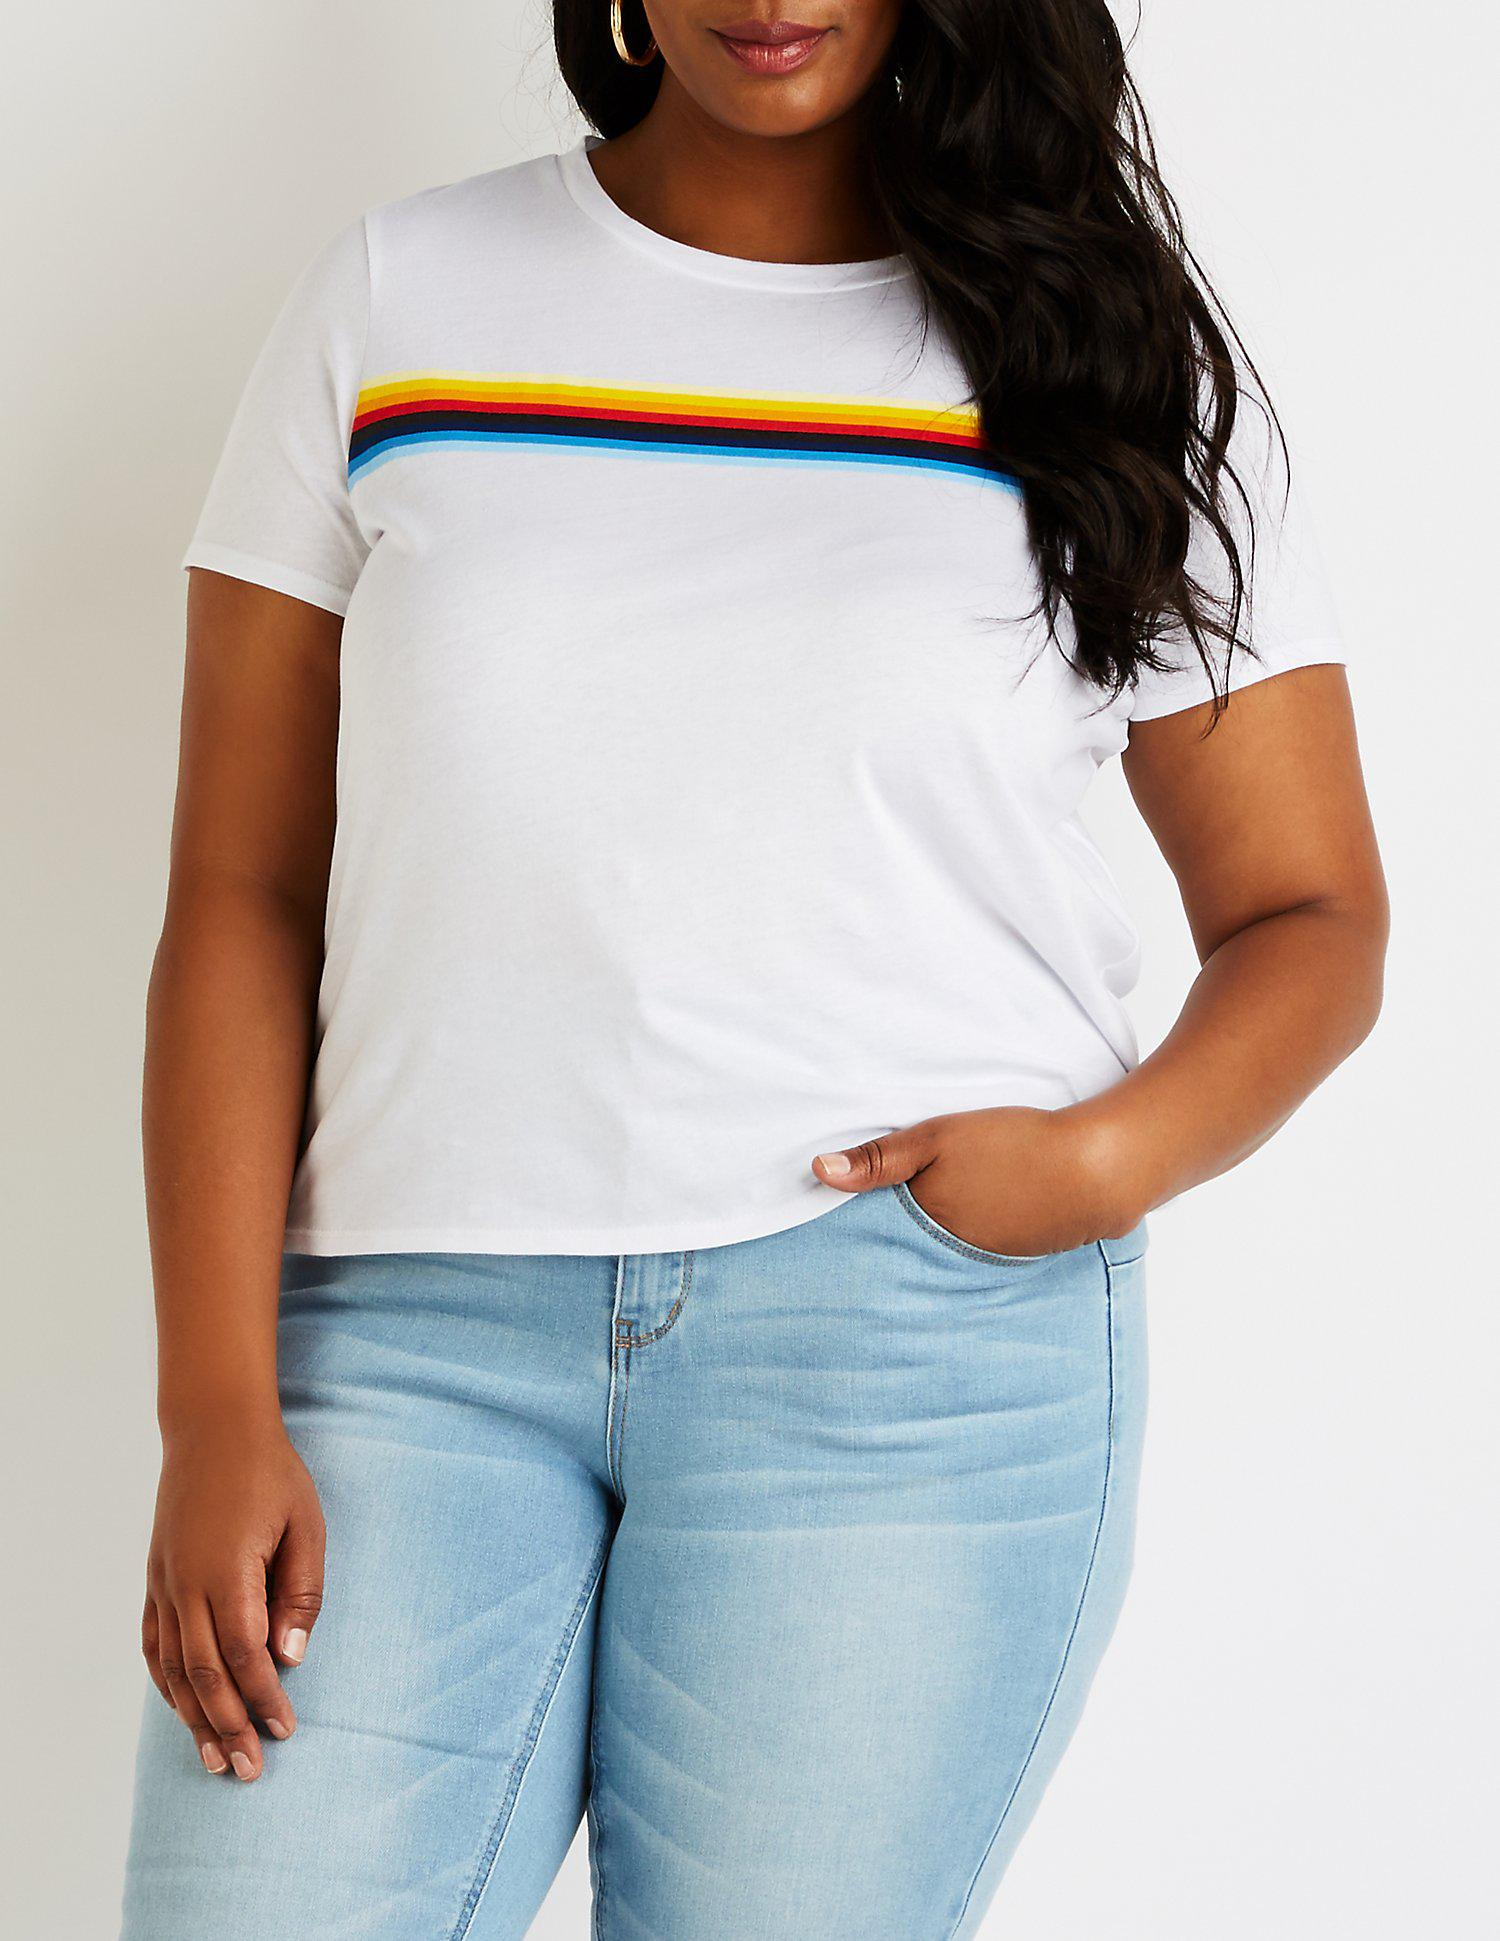 c7bb55e7d49eb6 Lyst - Charlotte Russe Plus Size Rainbow Striped Tee in White